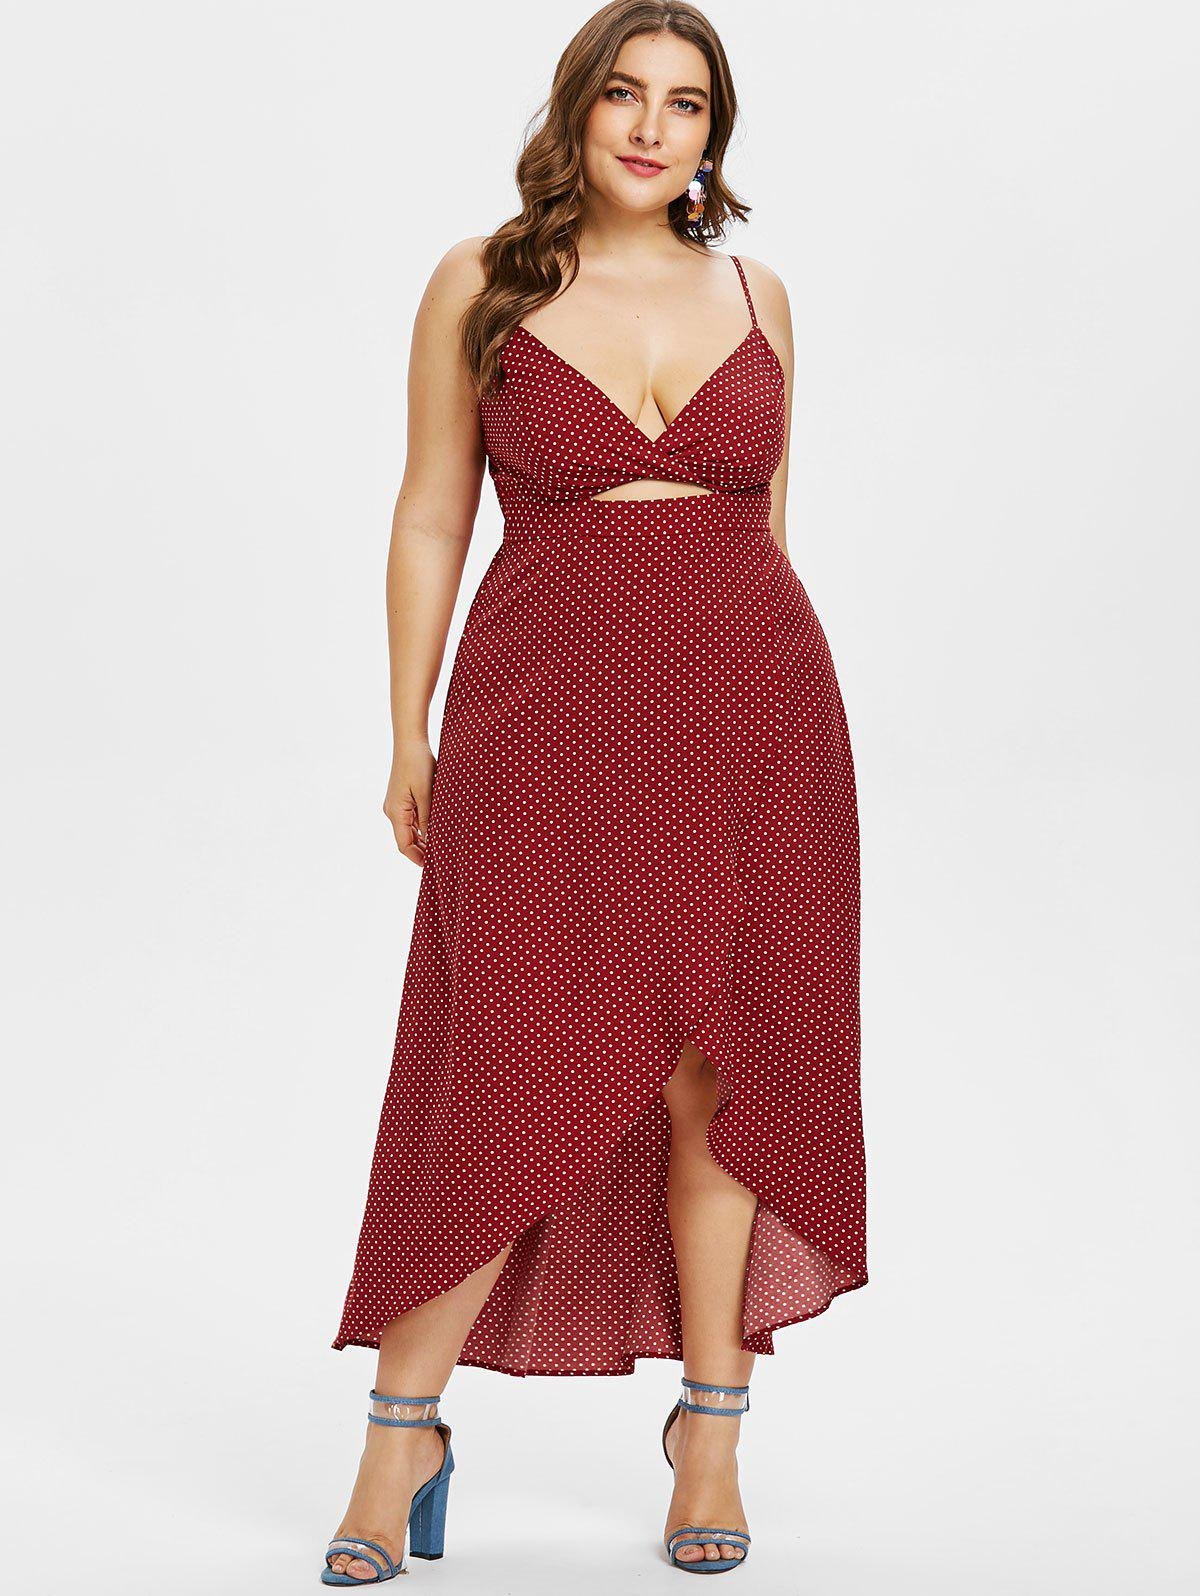 Plus Size Maxi High Low Polka Dot Dress - RED WINE 3X